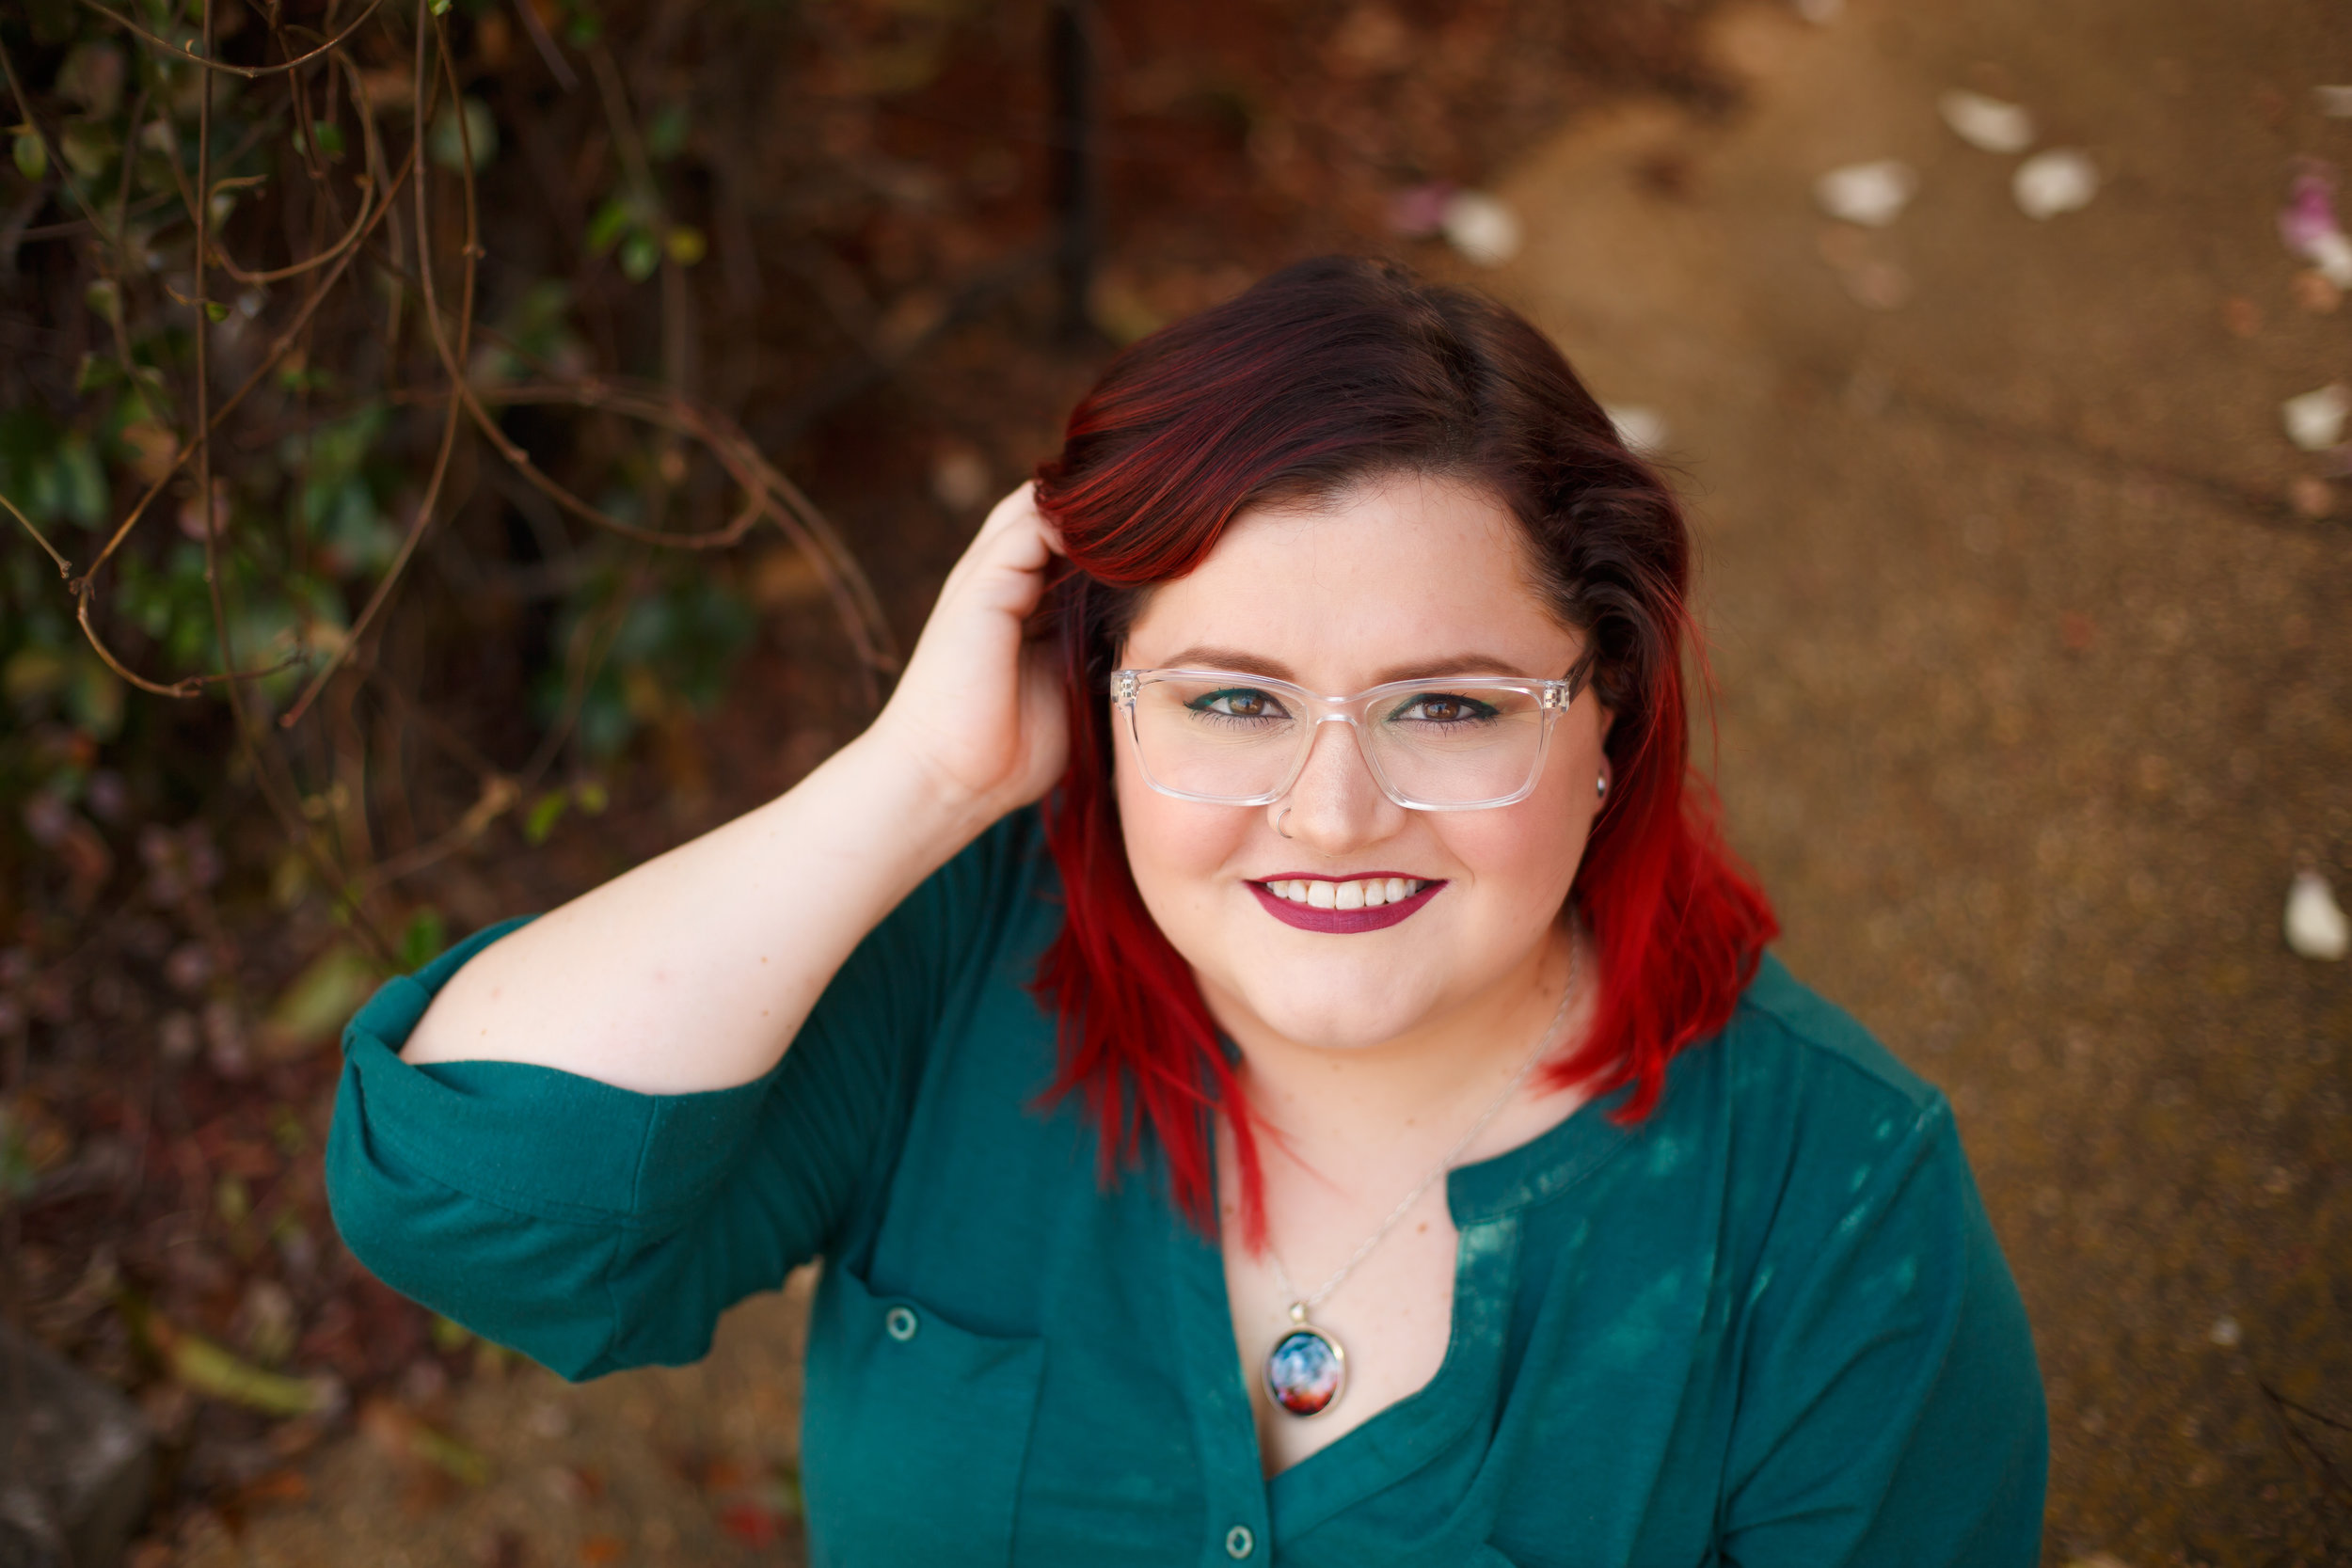 Sarah has written extensively for Genes to Genomes, the Genetics Society of America blog. -